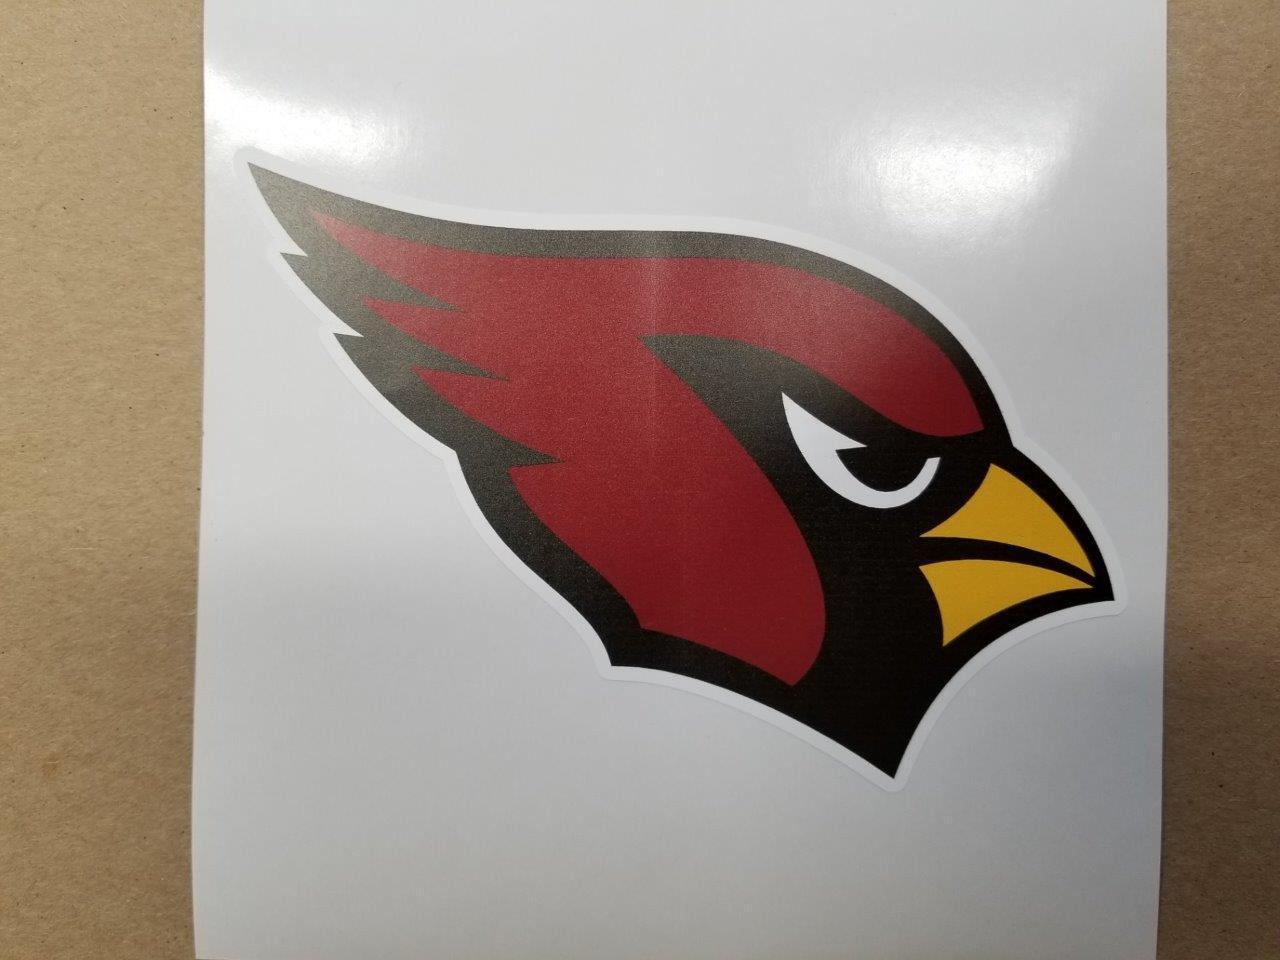 Arizona Cardinals   cornhole board or vehicle decal(s)AC2  free and fast delivery available